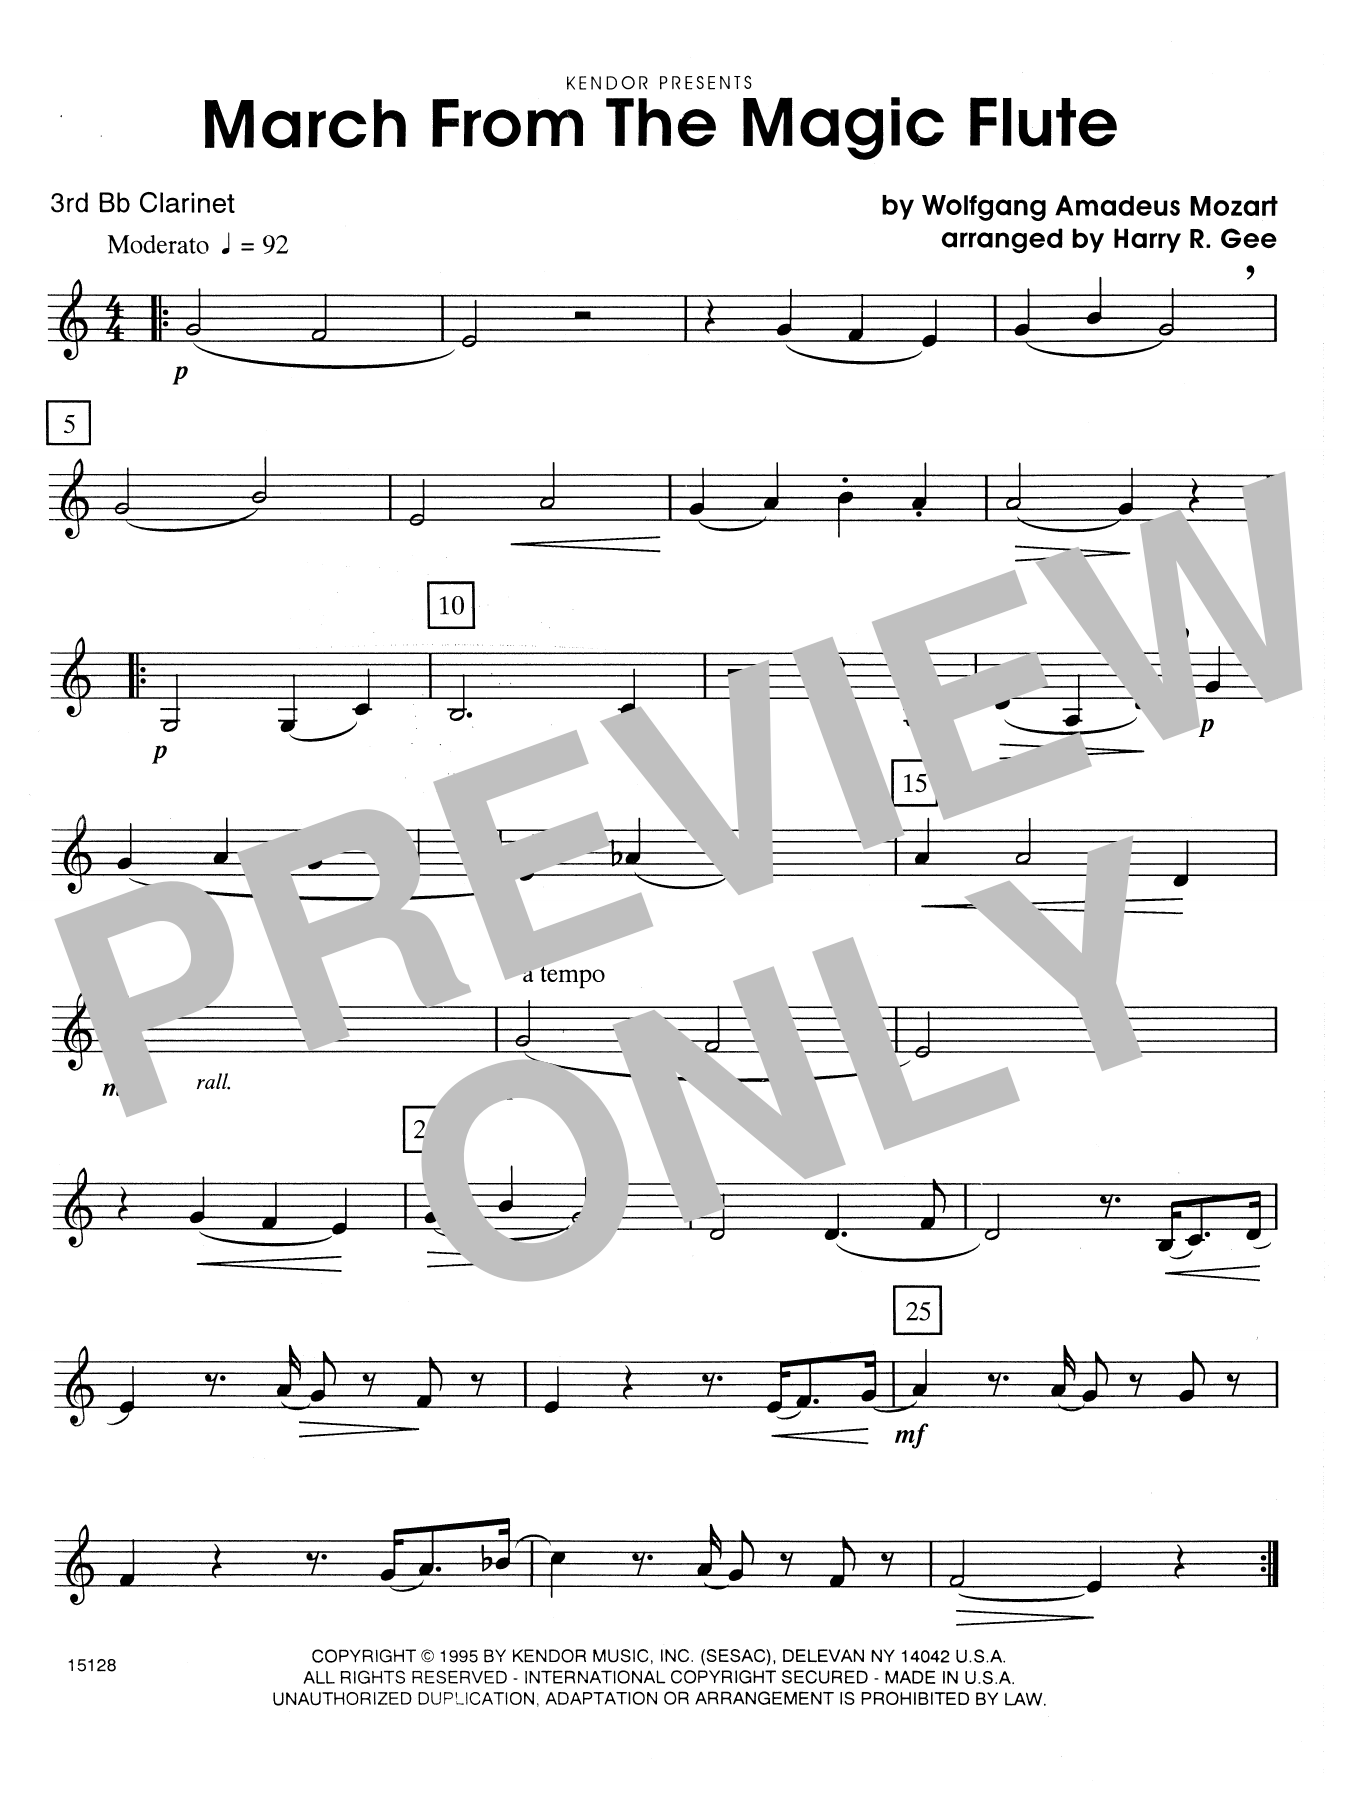 March From The Magic Flute - 3rd Bb Clarinet Sheet Music